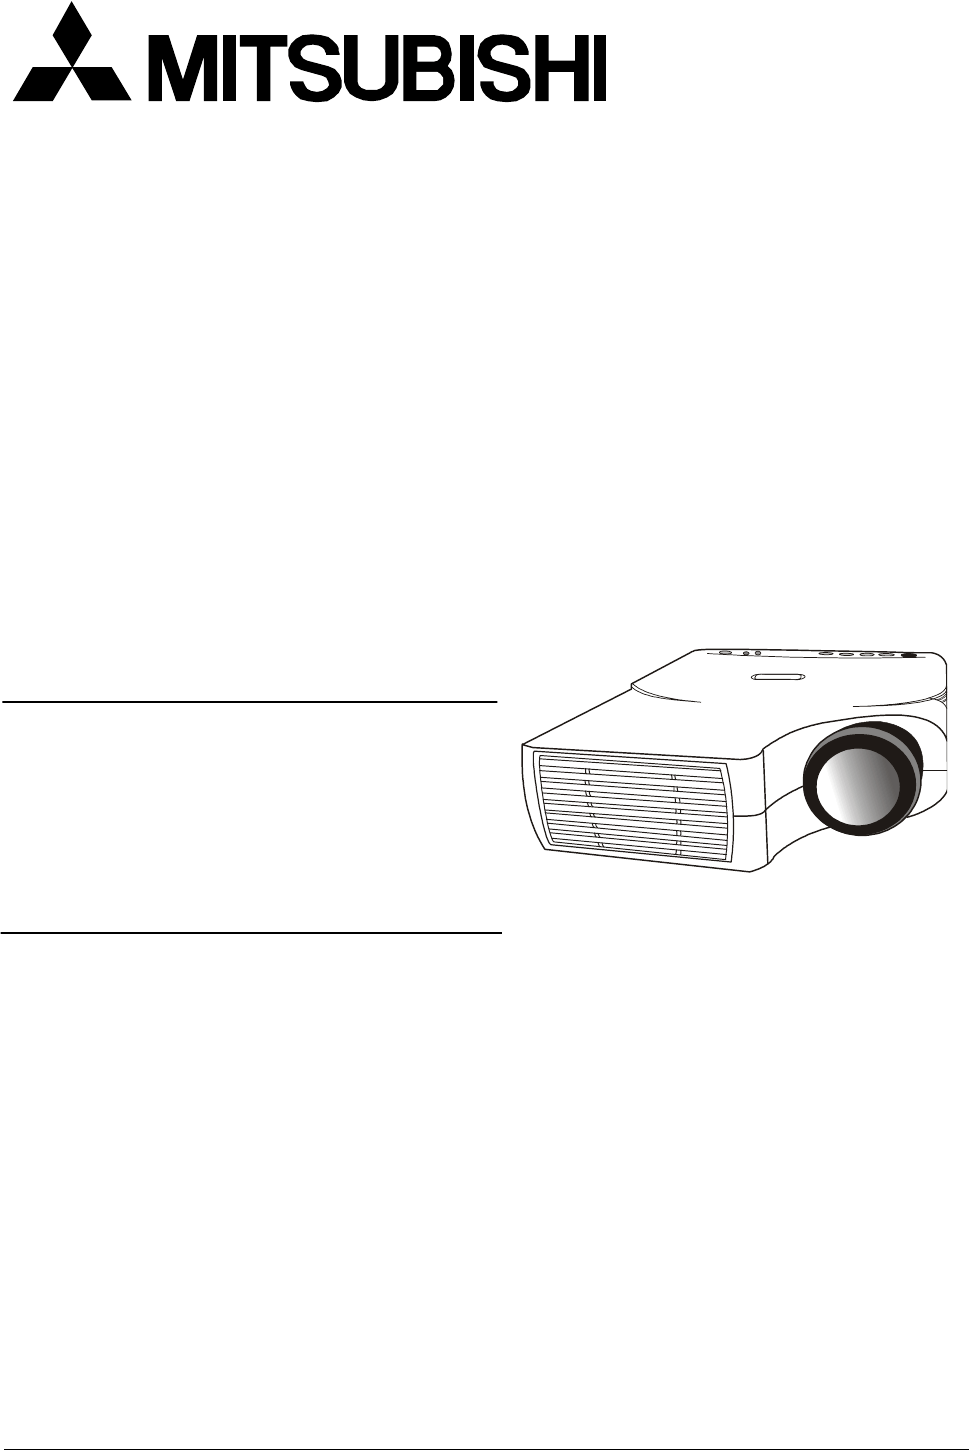 Mitsubishi Electronics Projector LVP-XD10U User Guide